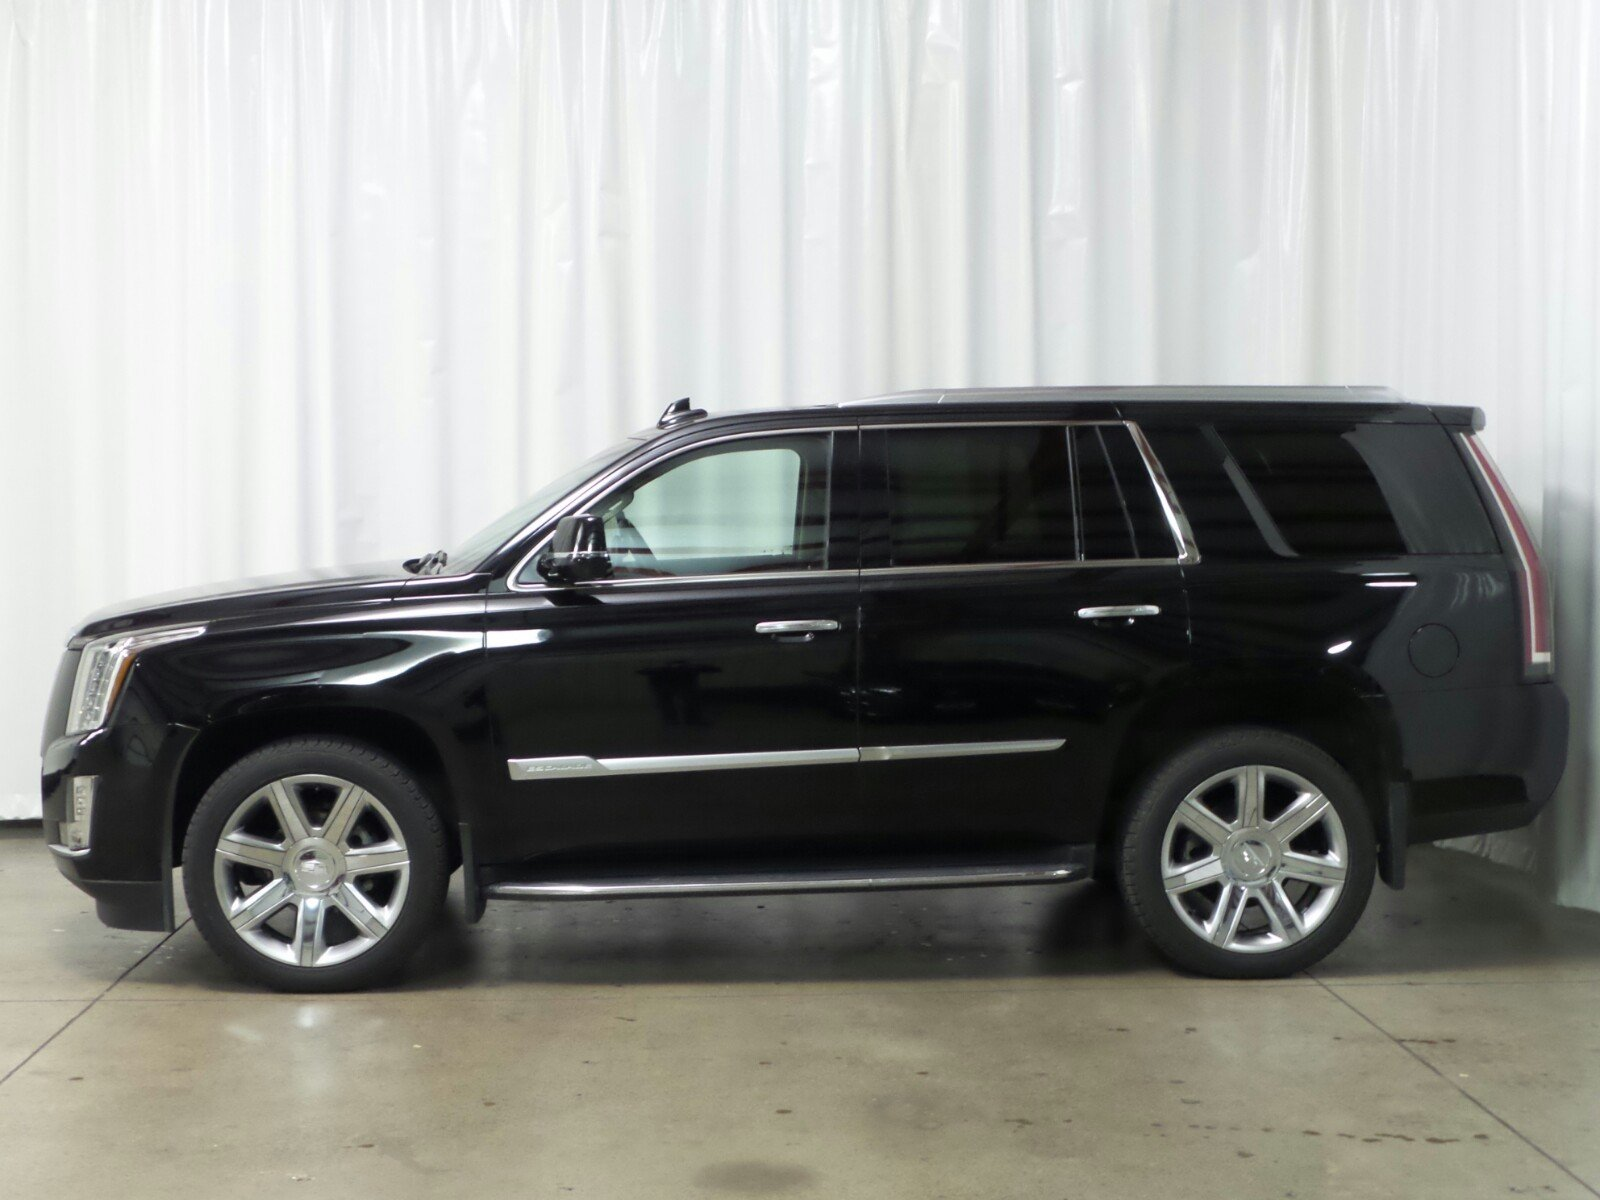 Certified Pre Owned 2016 Cadillac Escalade Premium Collection SUV in